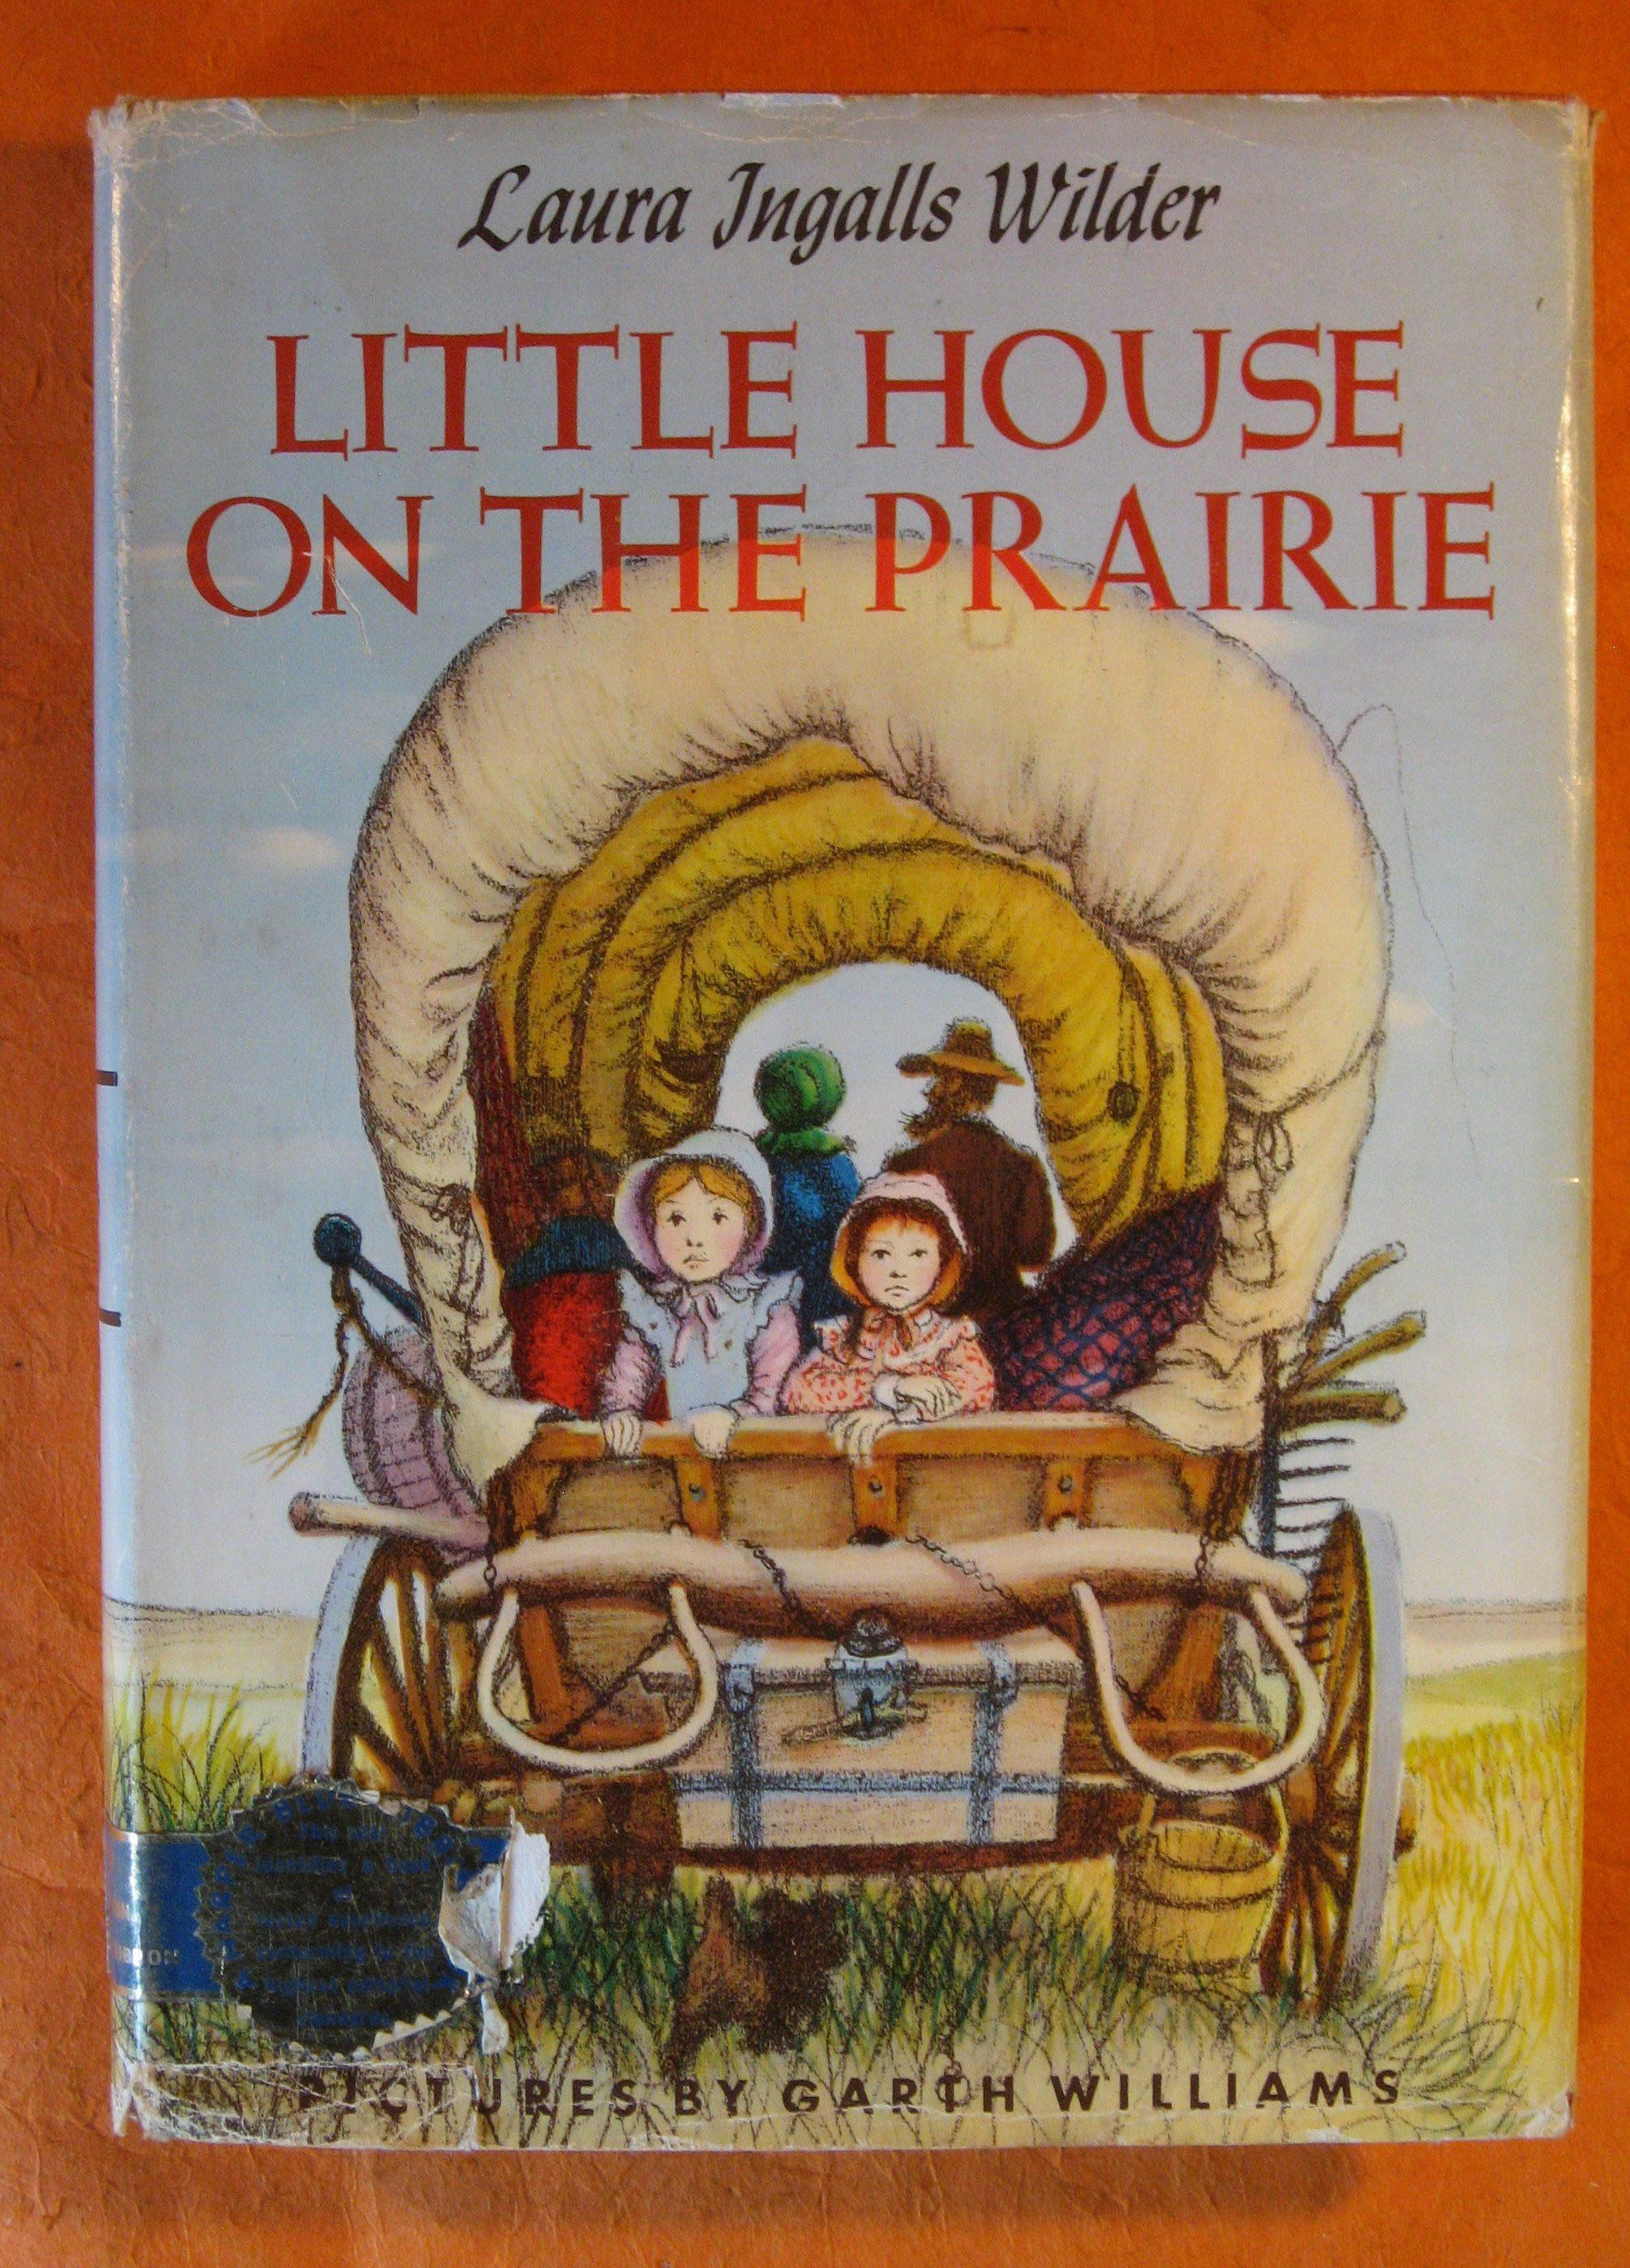 Little House On The Prairie By Laura Ingalls Wilder Etsy Kids